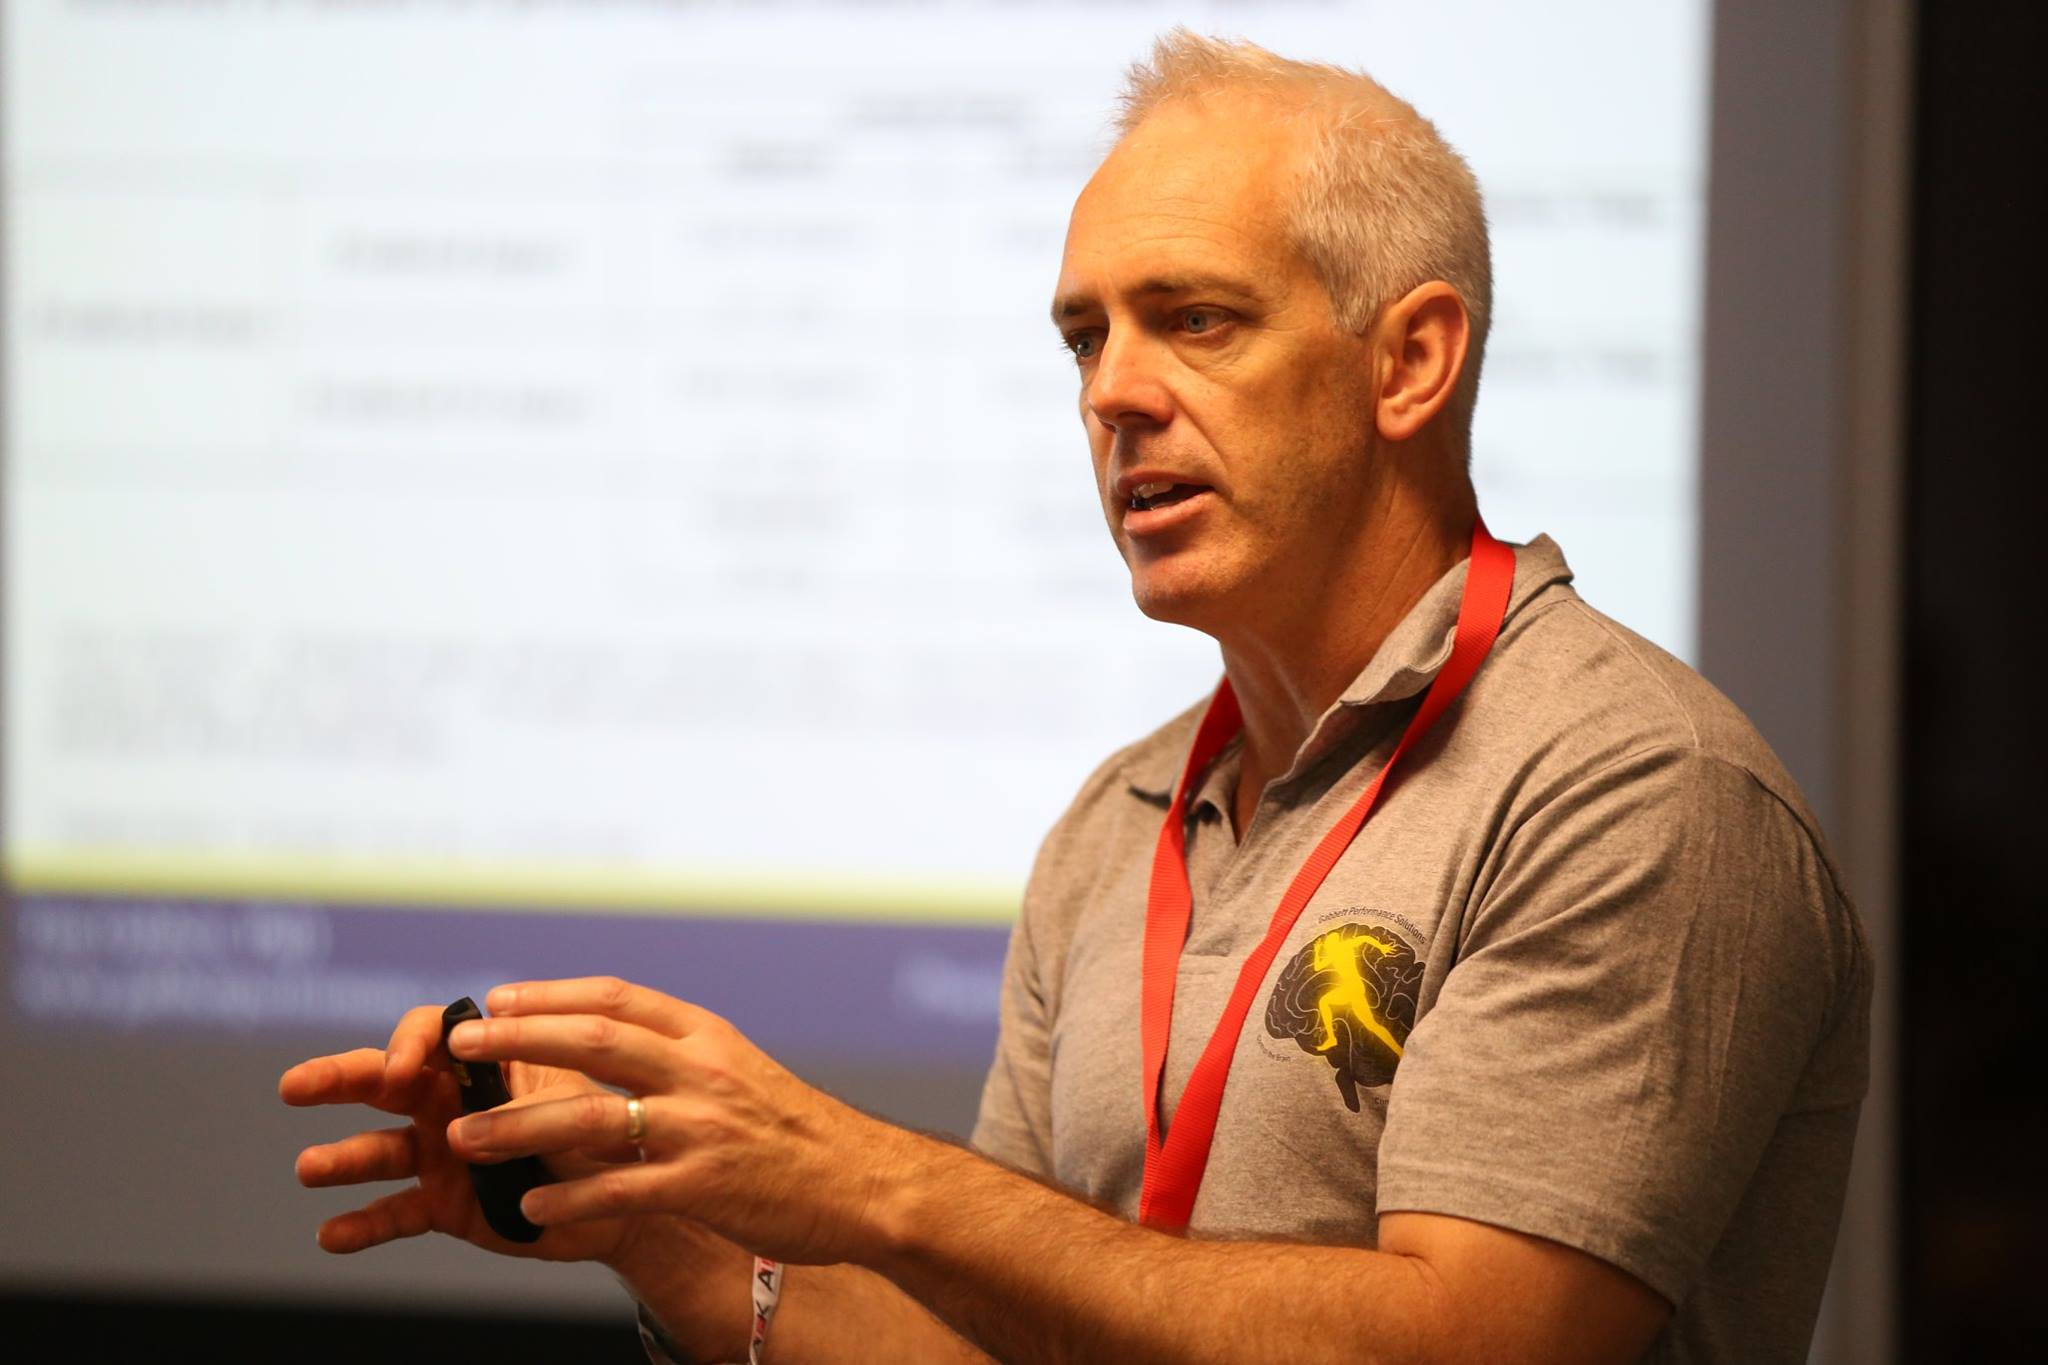 Professor Tim Gabbett - is a world renowned sports scientist, consultant and educator. He is bringing his skills to California in January 2019 where he'll be leading a workshop discussing these ideas and more. A detailed course description and registration info can be found here.